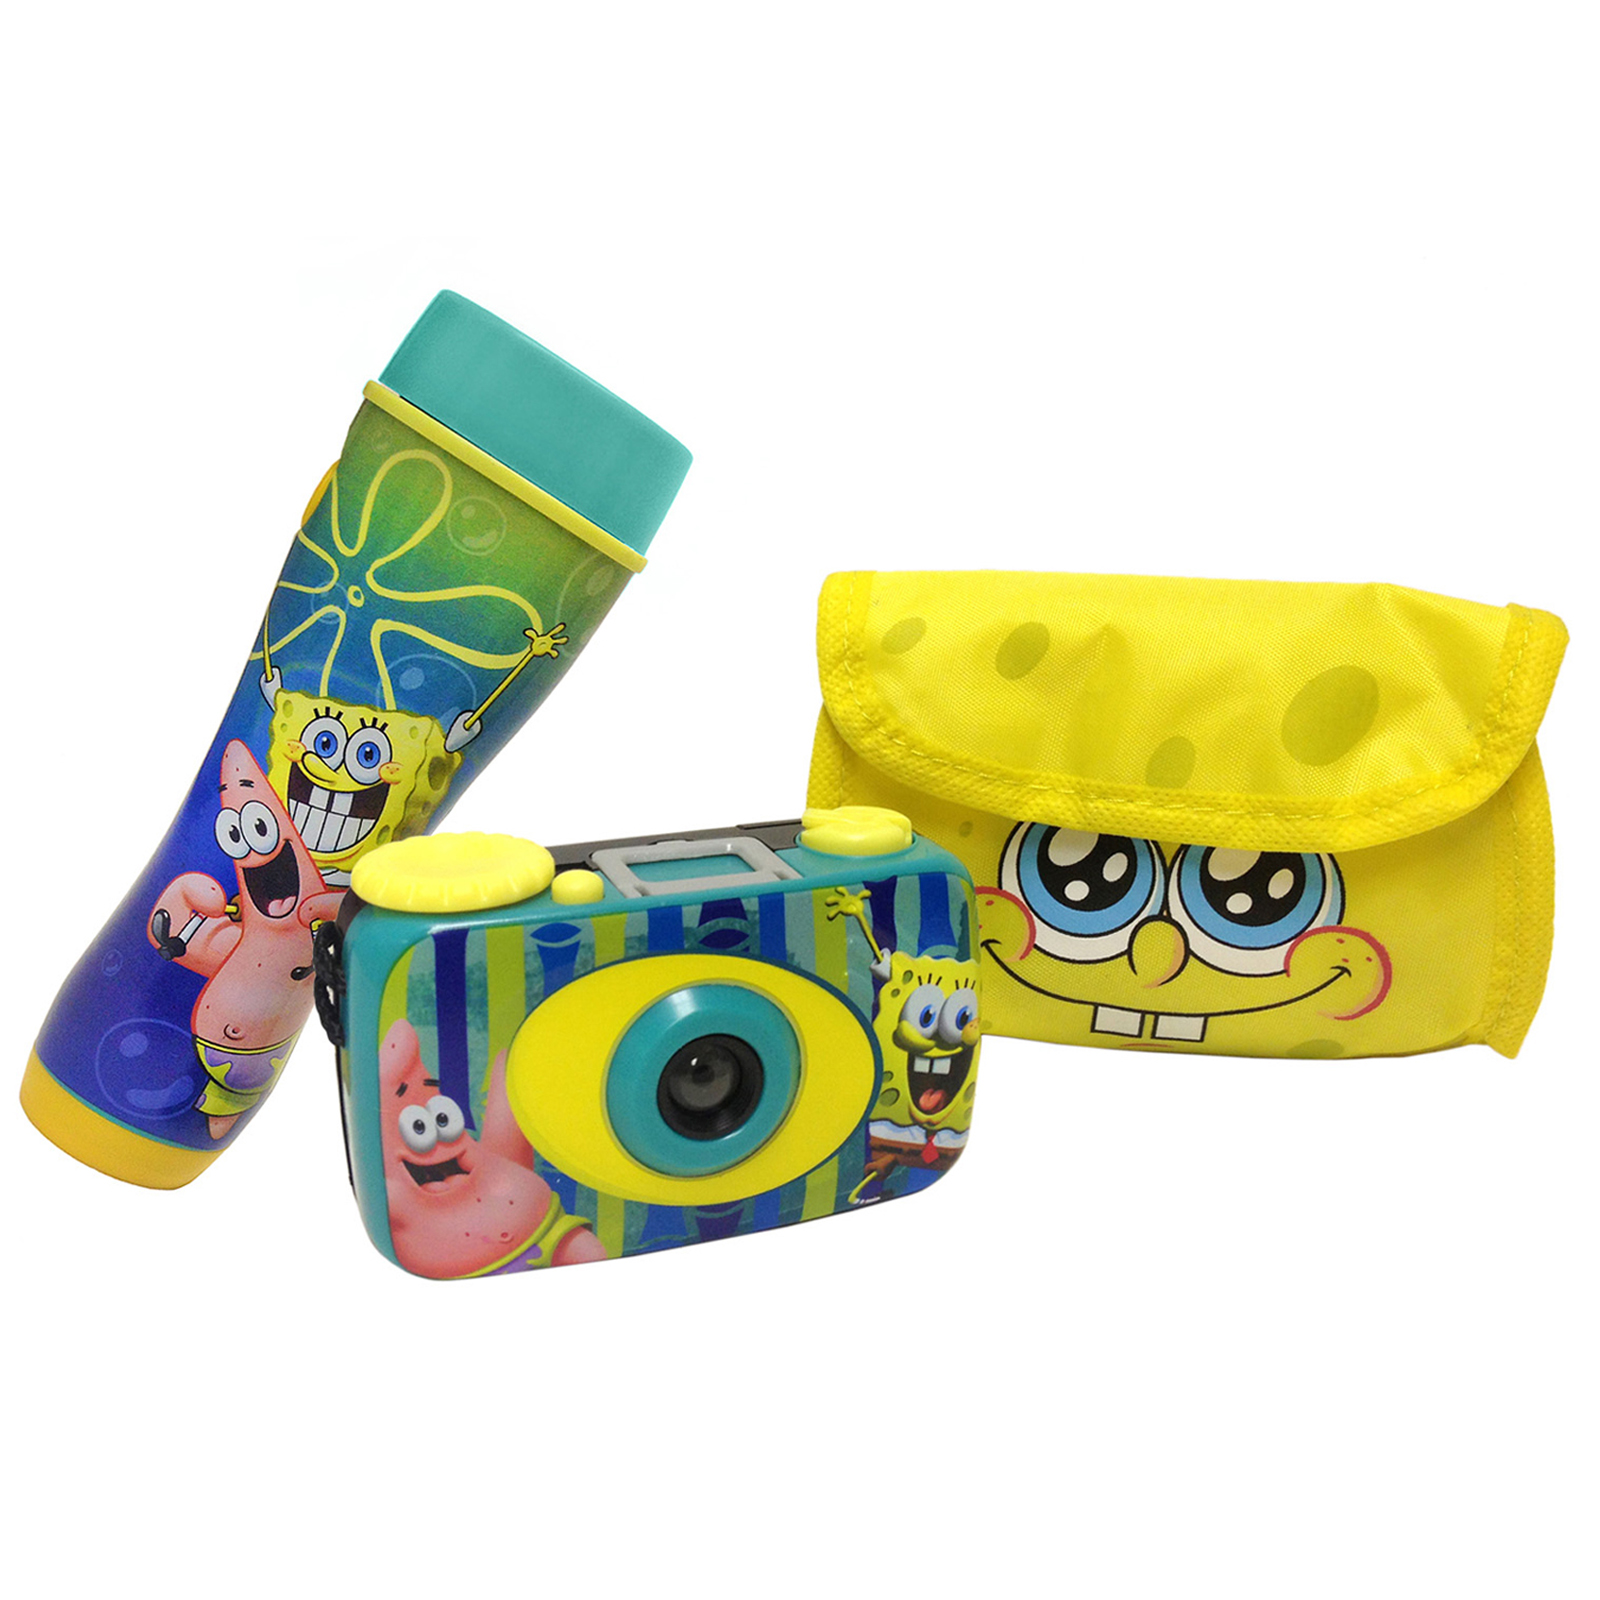 SpongeBob Squarepants Flashlight and Camera Kit